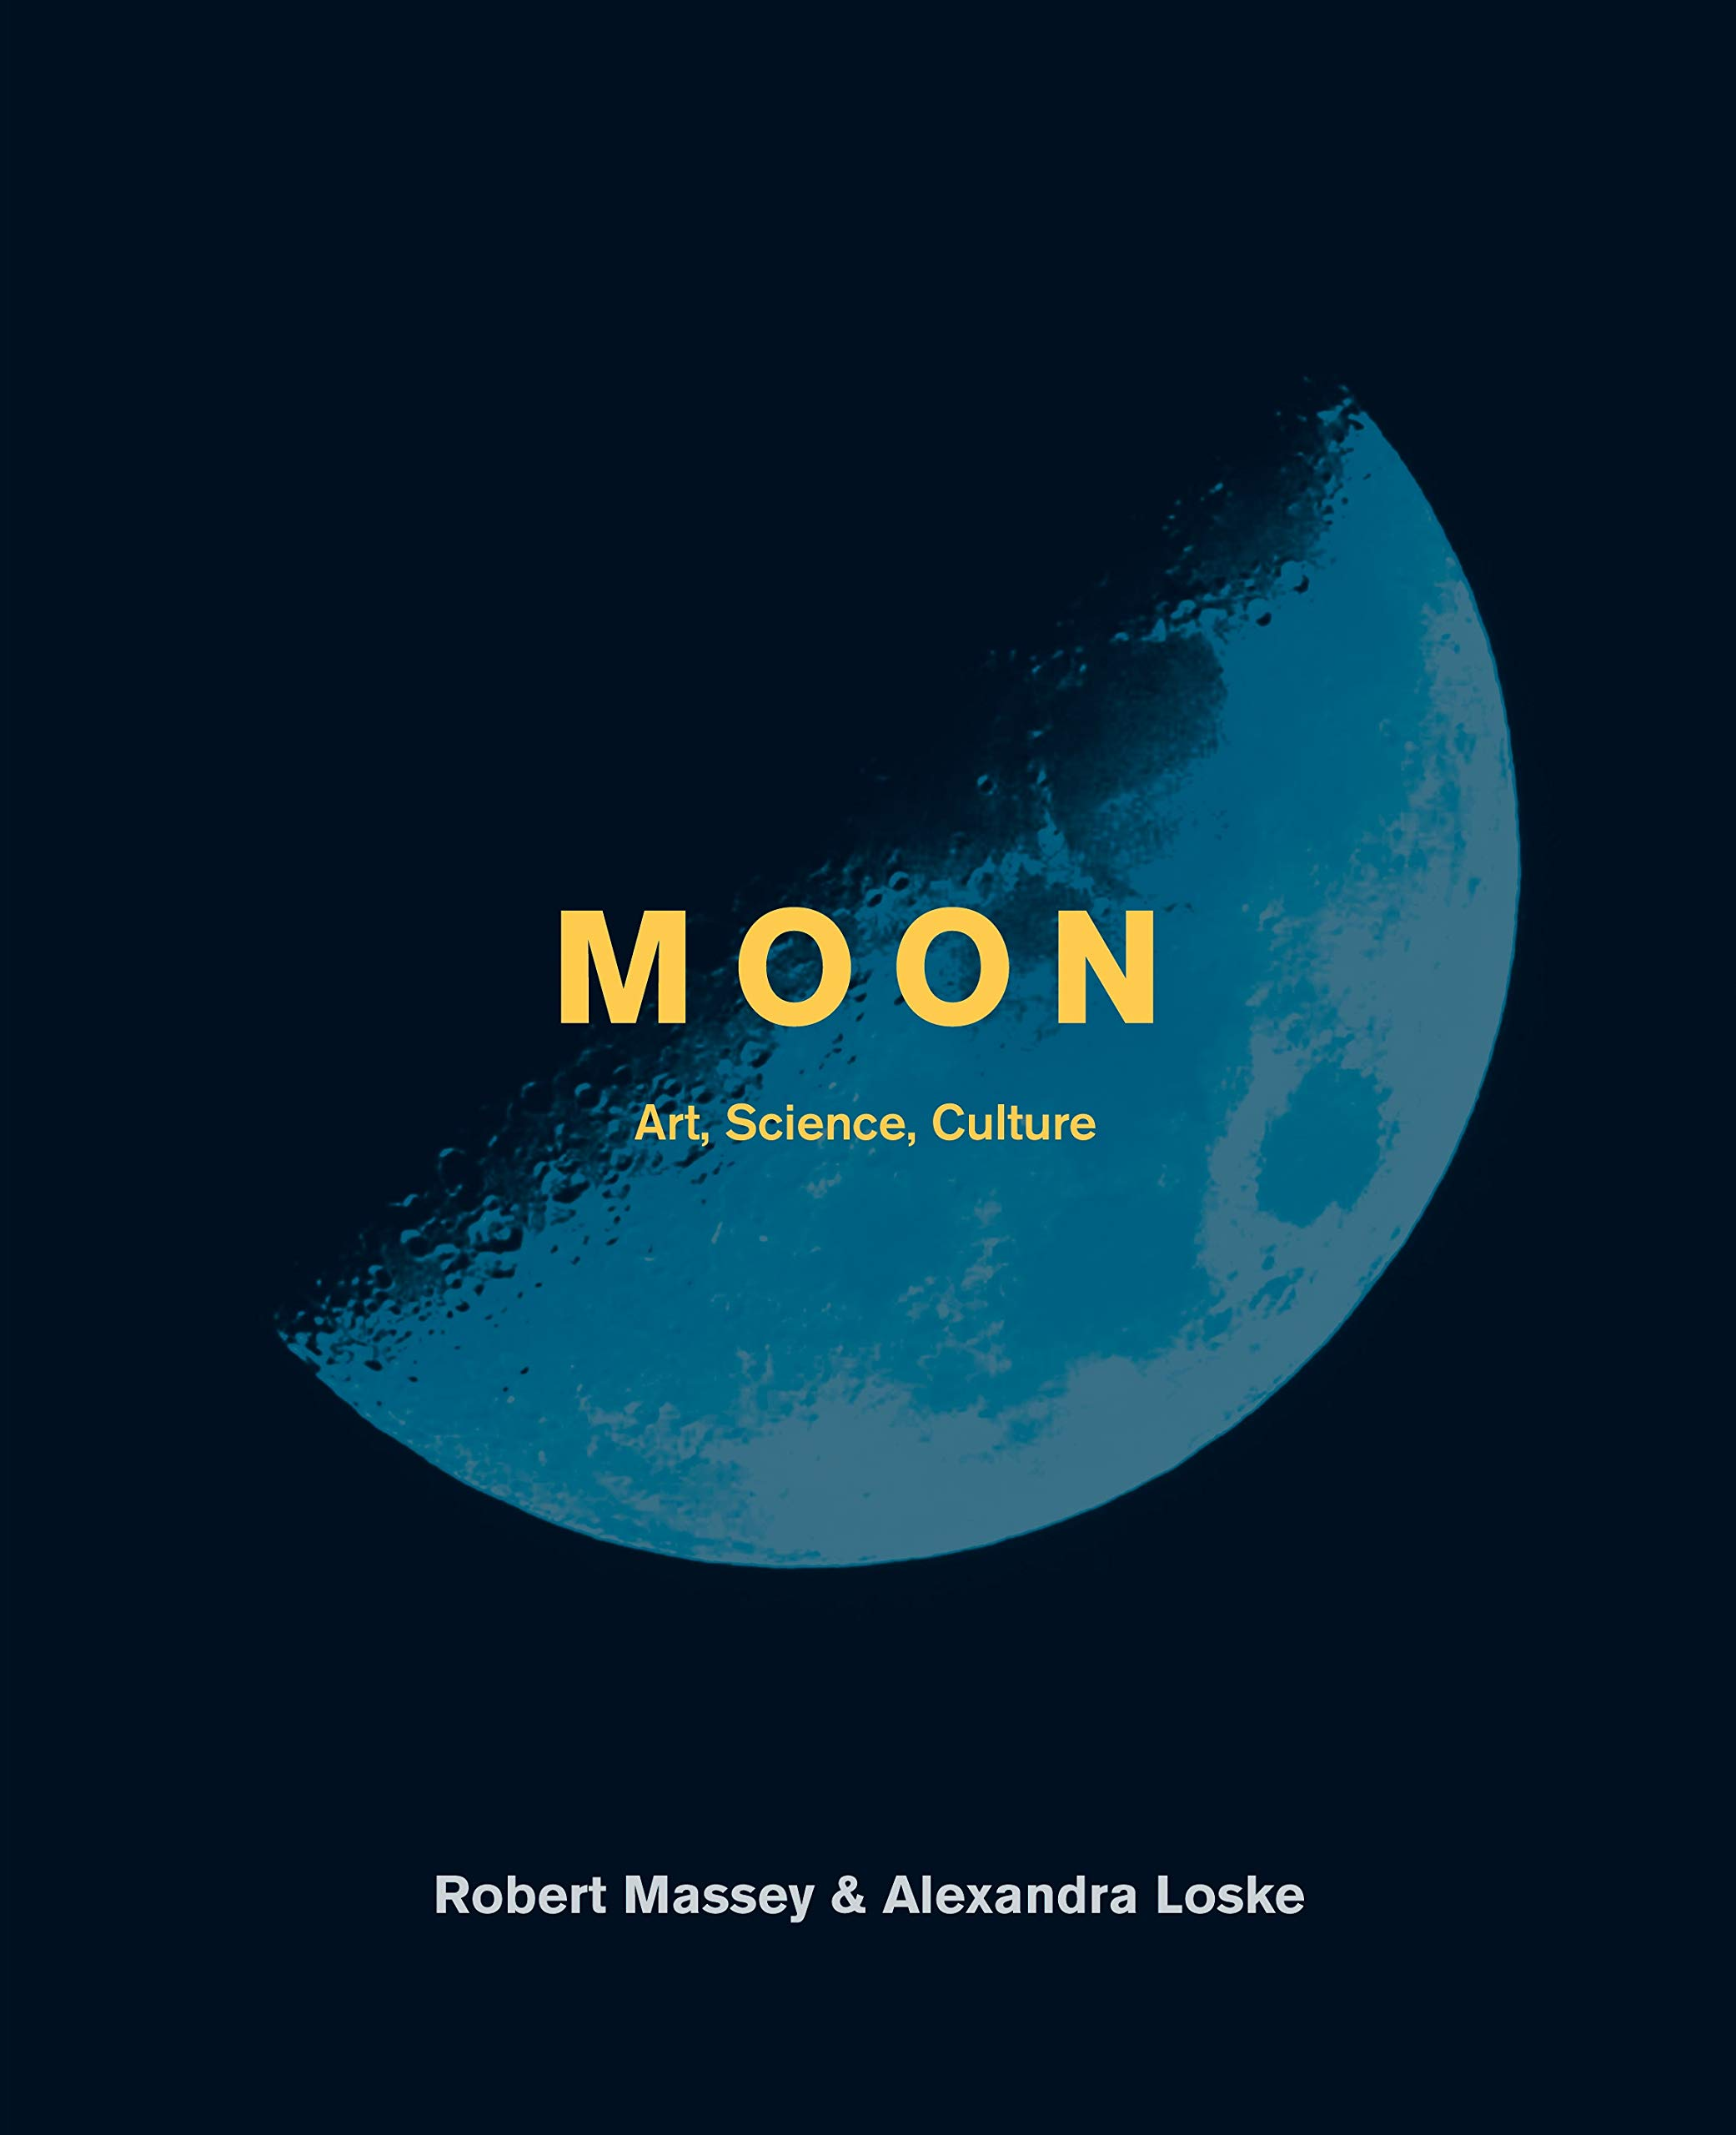 Image OfMoon: Art, Science, Culture: The Art, Science And Culture Of The Moon